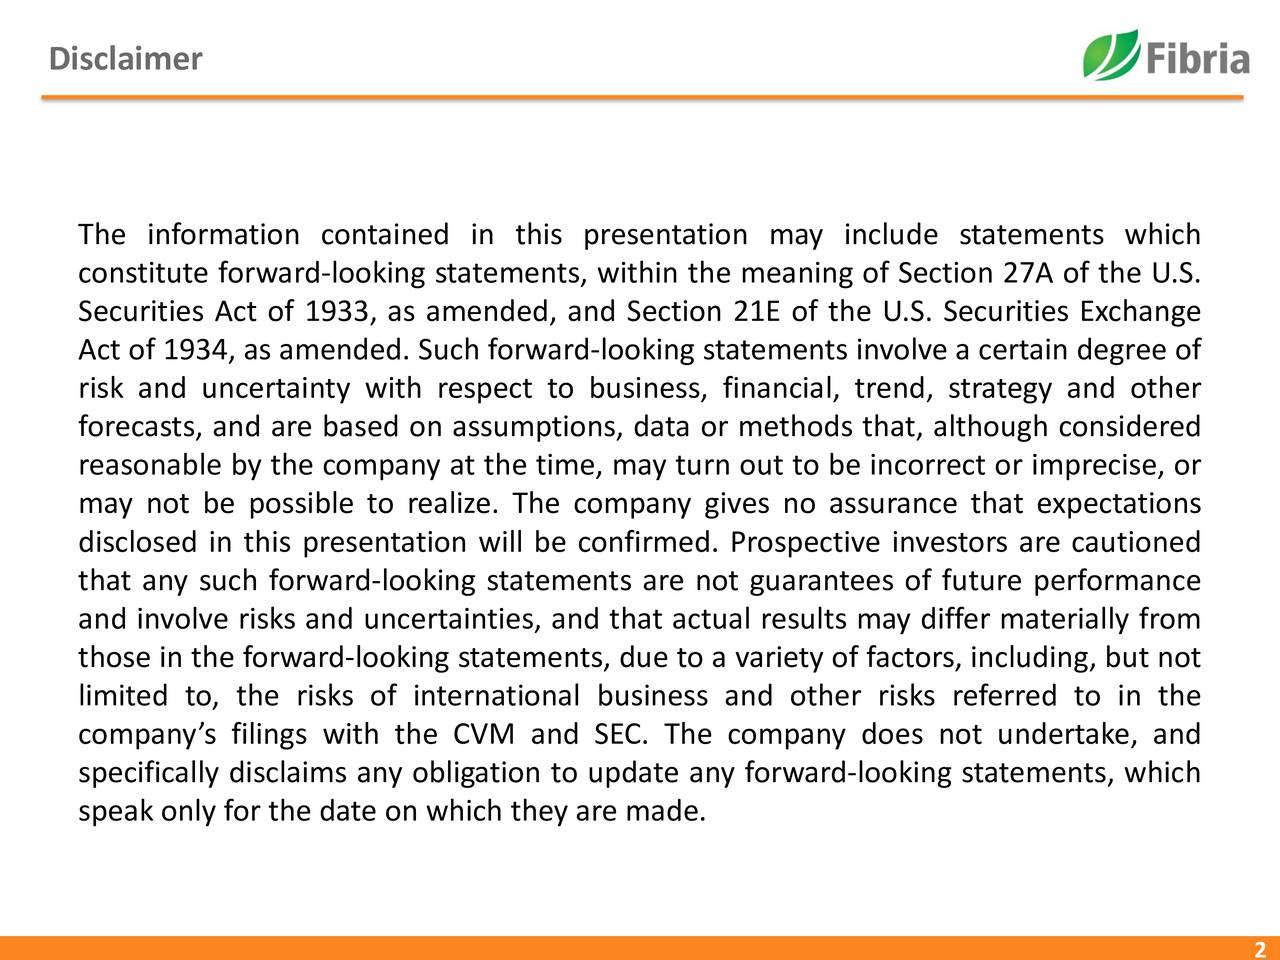 The information contained in this presentation may include statements which constitute forward-looking statements, within the meaning of Section 27A of the U.S. Securities Act of 1933, as amended, and Section 21E of the U.S. Securities Exchange Act of 1934, as amended. Such forward-looking statements involve a certain degree of risk and uncertainty with respect to business, financial, trend, strategy and other forecasts, and are based on assumptions, data or methods that, although considered reasonable by the company at the time, may turn out to be incorrect or imprecise, or may not be possible to realize. The company gives no assurance that expectations disclosed in this presentation will be confirmed. Prospective investors are cautioned that any such forward-looking statements are not guarantees of future performance and involve risks and uncertainties, and that actual results may differ materially from those in the forward-looking statements, due to a variety of factors, including, but not limited to, the risks of international business and other risks referred to in the companys filings with the CVM and SEC. The company does not undertake, and specifically disclaims any obligation to update any forward-looking statements, which speak only for the date on which they are made.